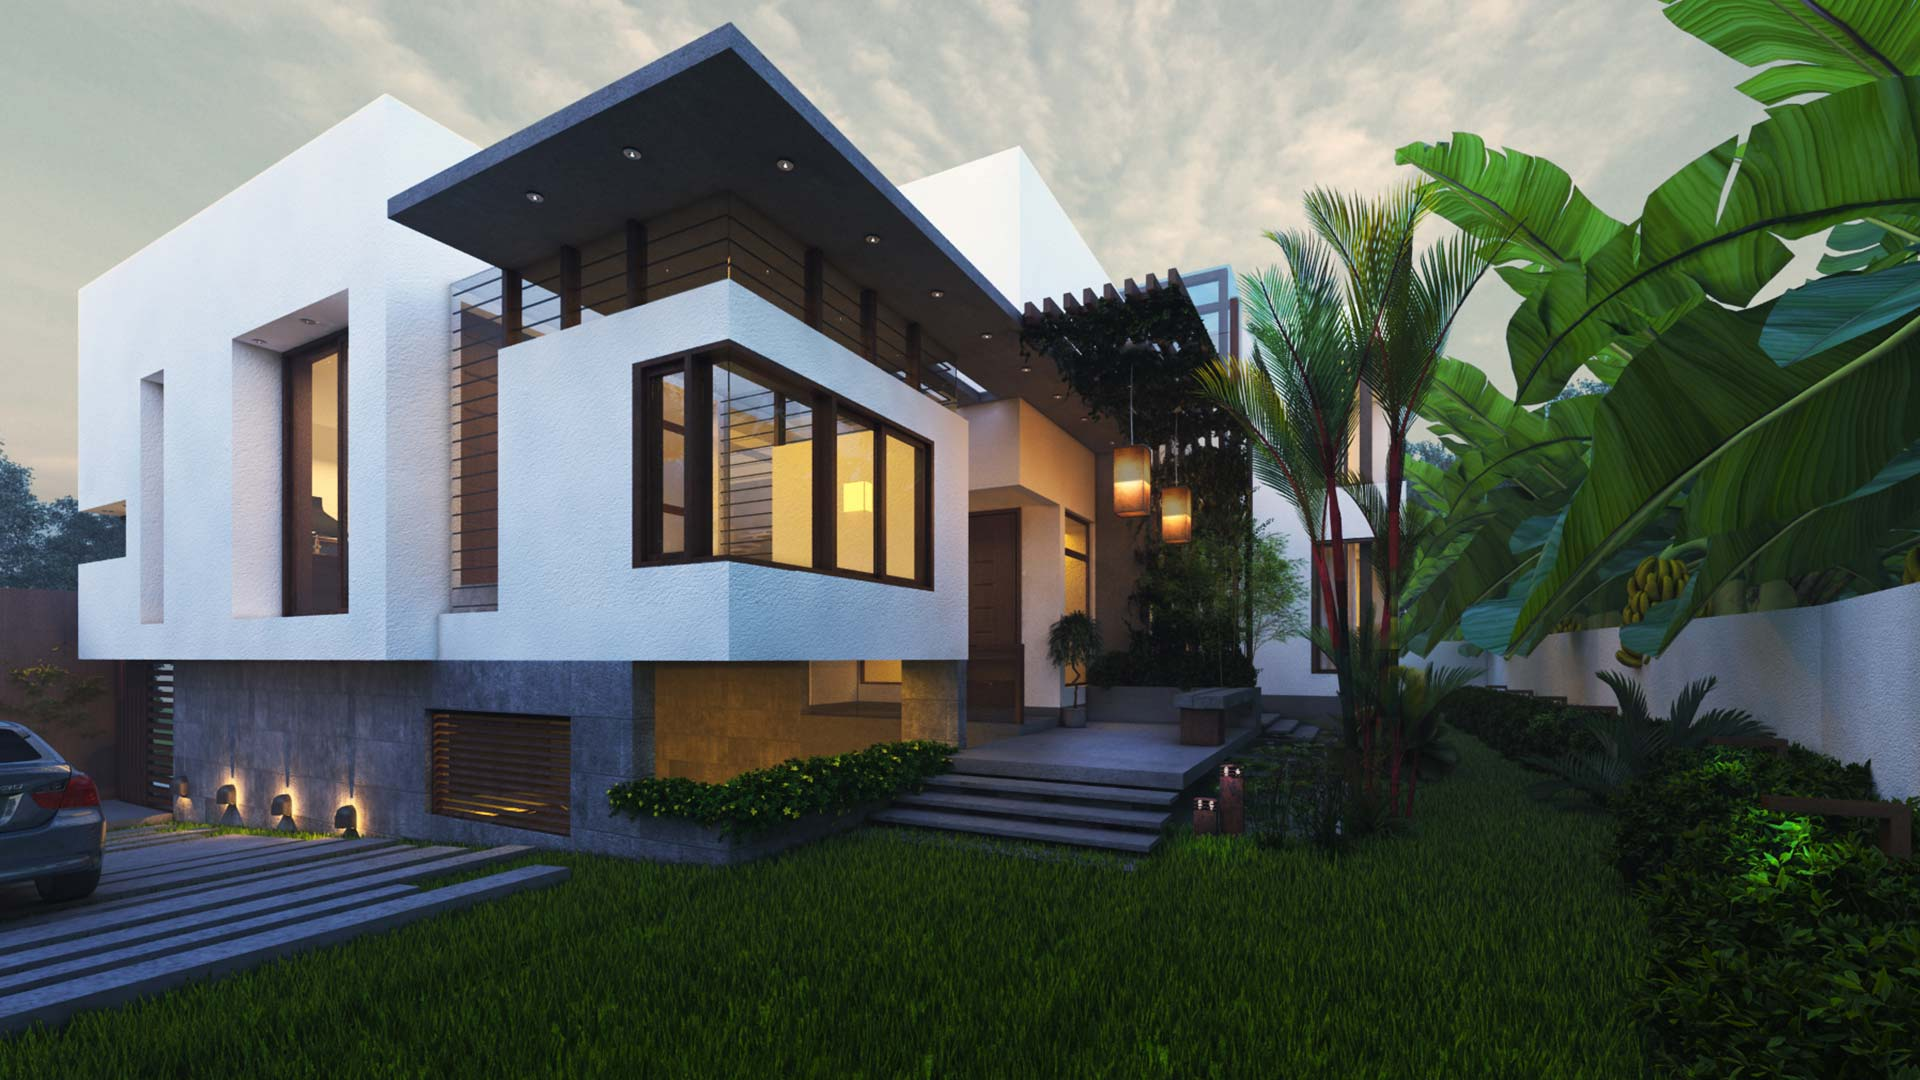 Top 50 Architecture Firms in Chennai - Anutham Architecture Studio